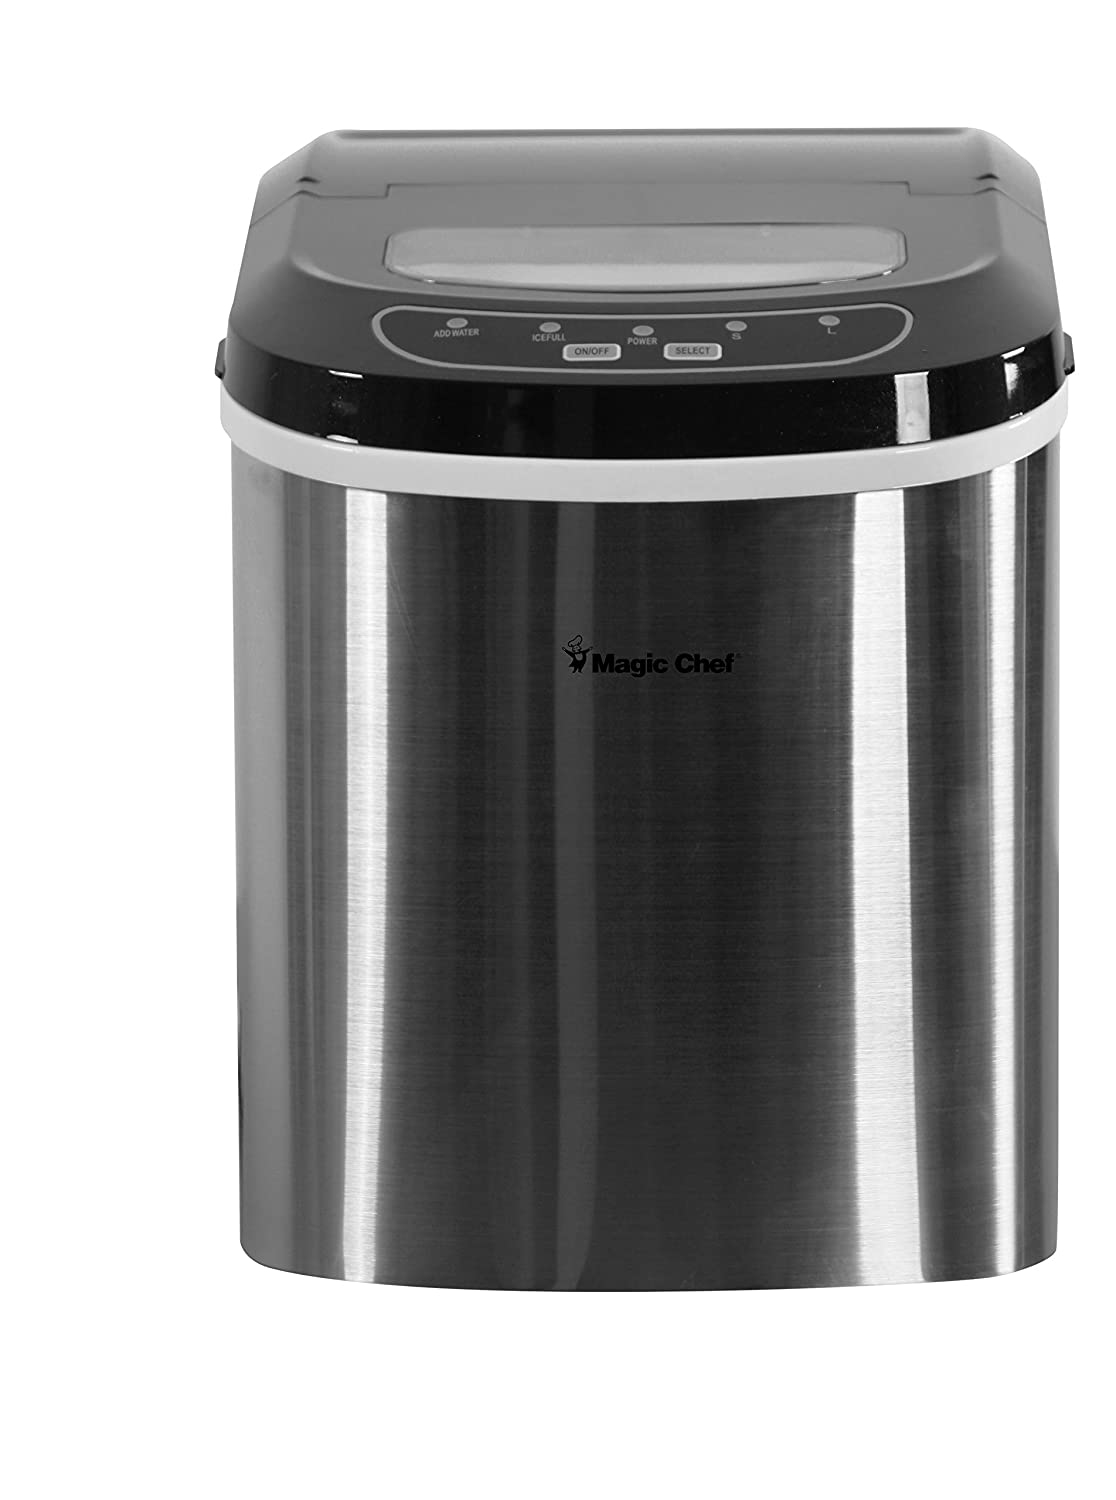 Magic Chef 27-Lb. Portable Countertop Ice Maker in Silver